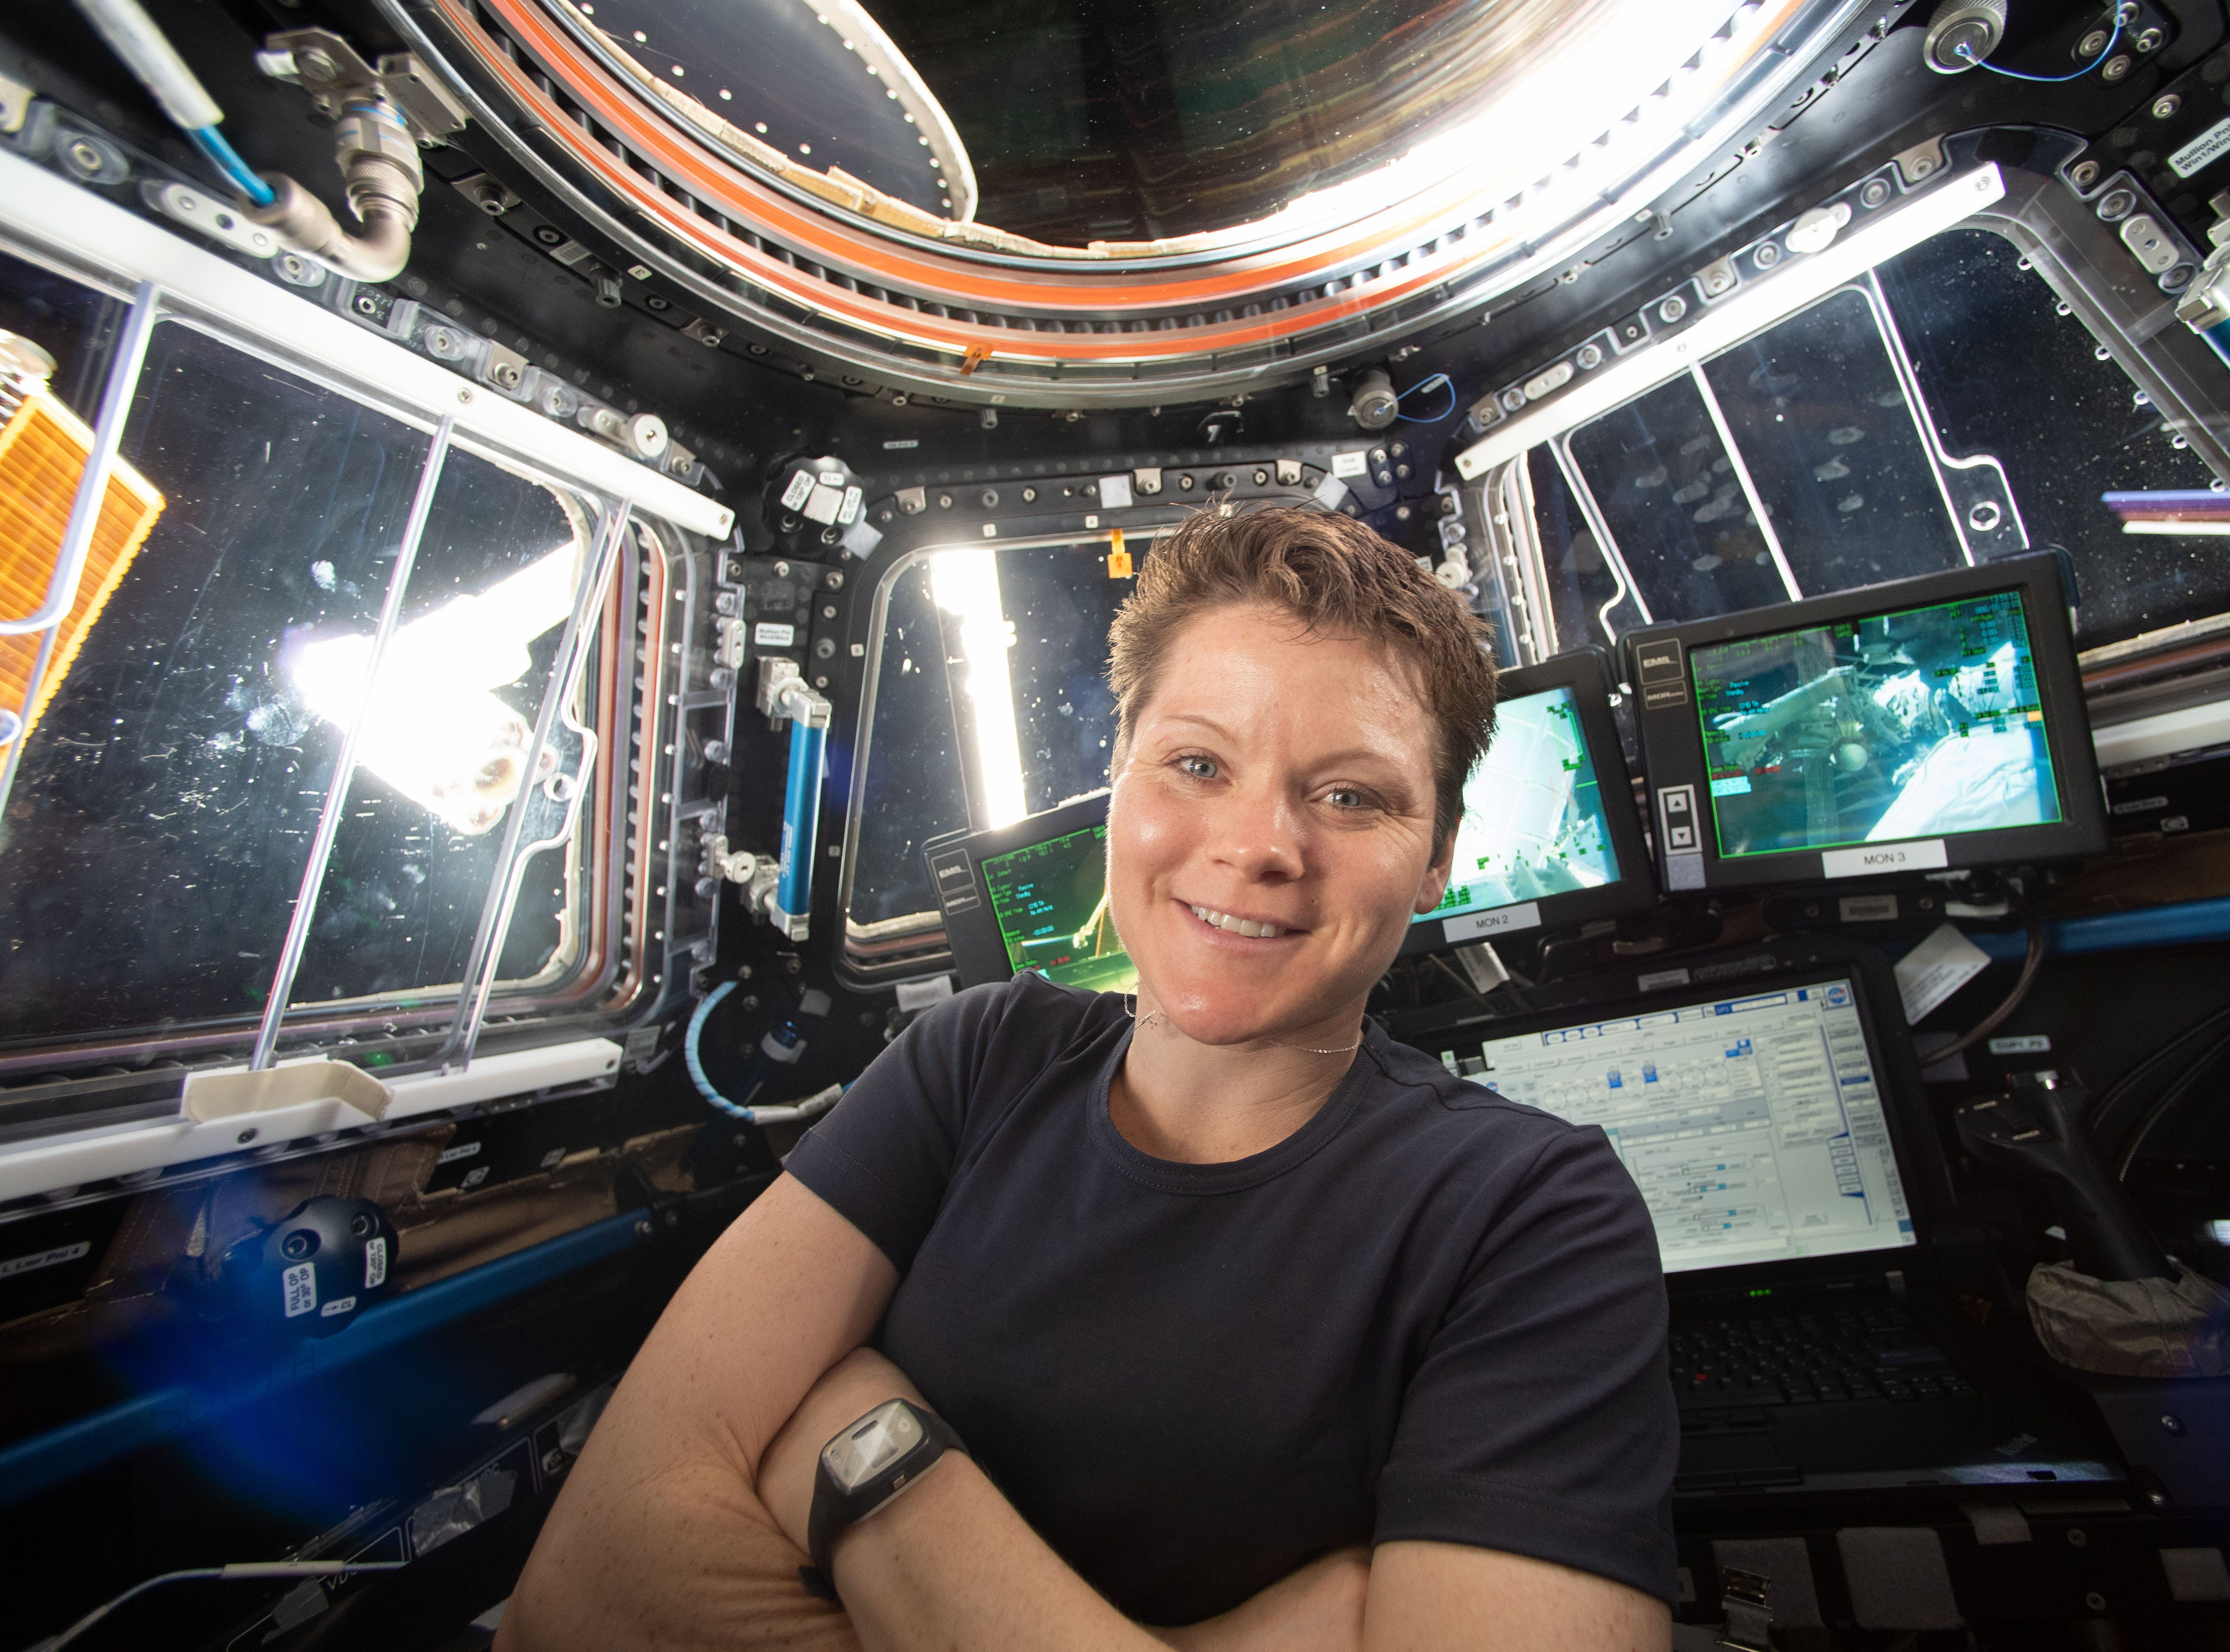 NASA astronaut Anne McClain takes a break for a portrait in April 2019 inside the cupola of the International Space Station while practicing Canadarm2 robotics maneuvers and Cygnus spacecraft capture techniques.